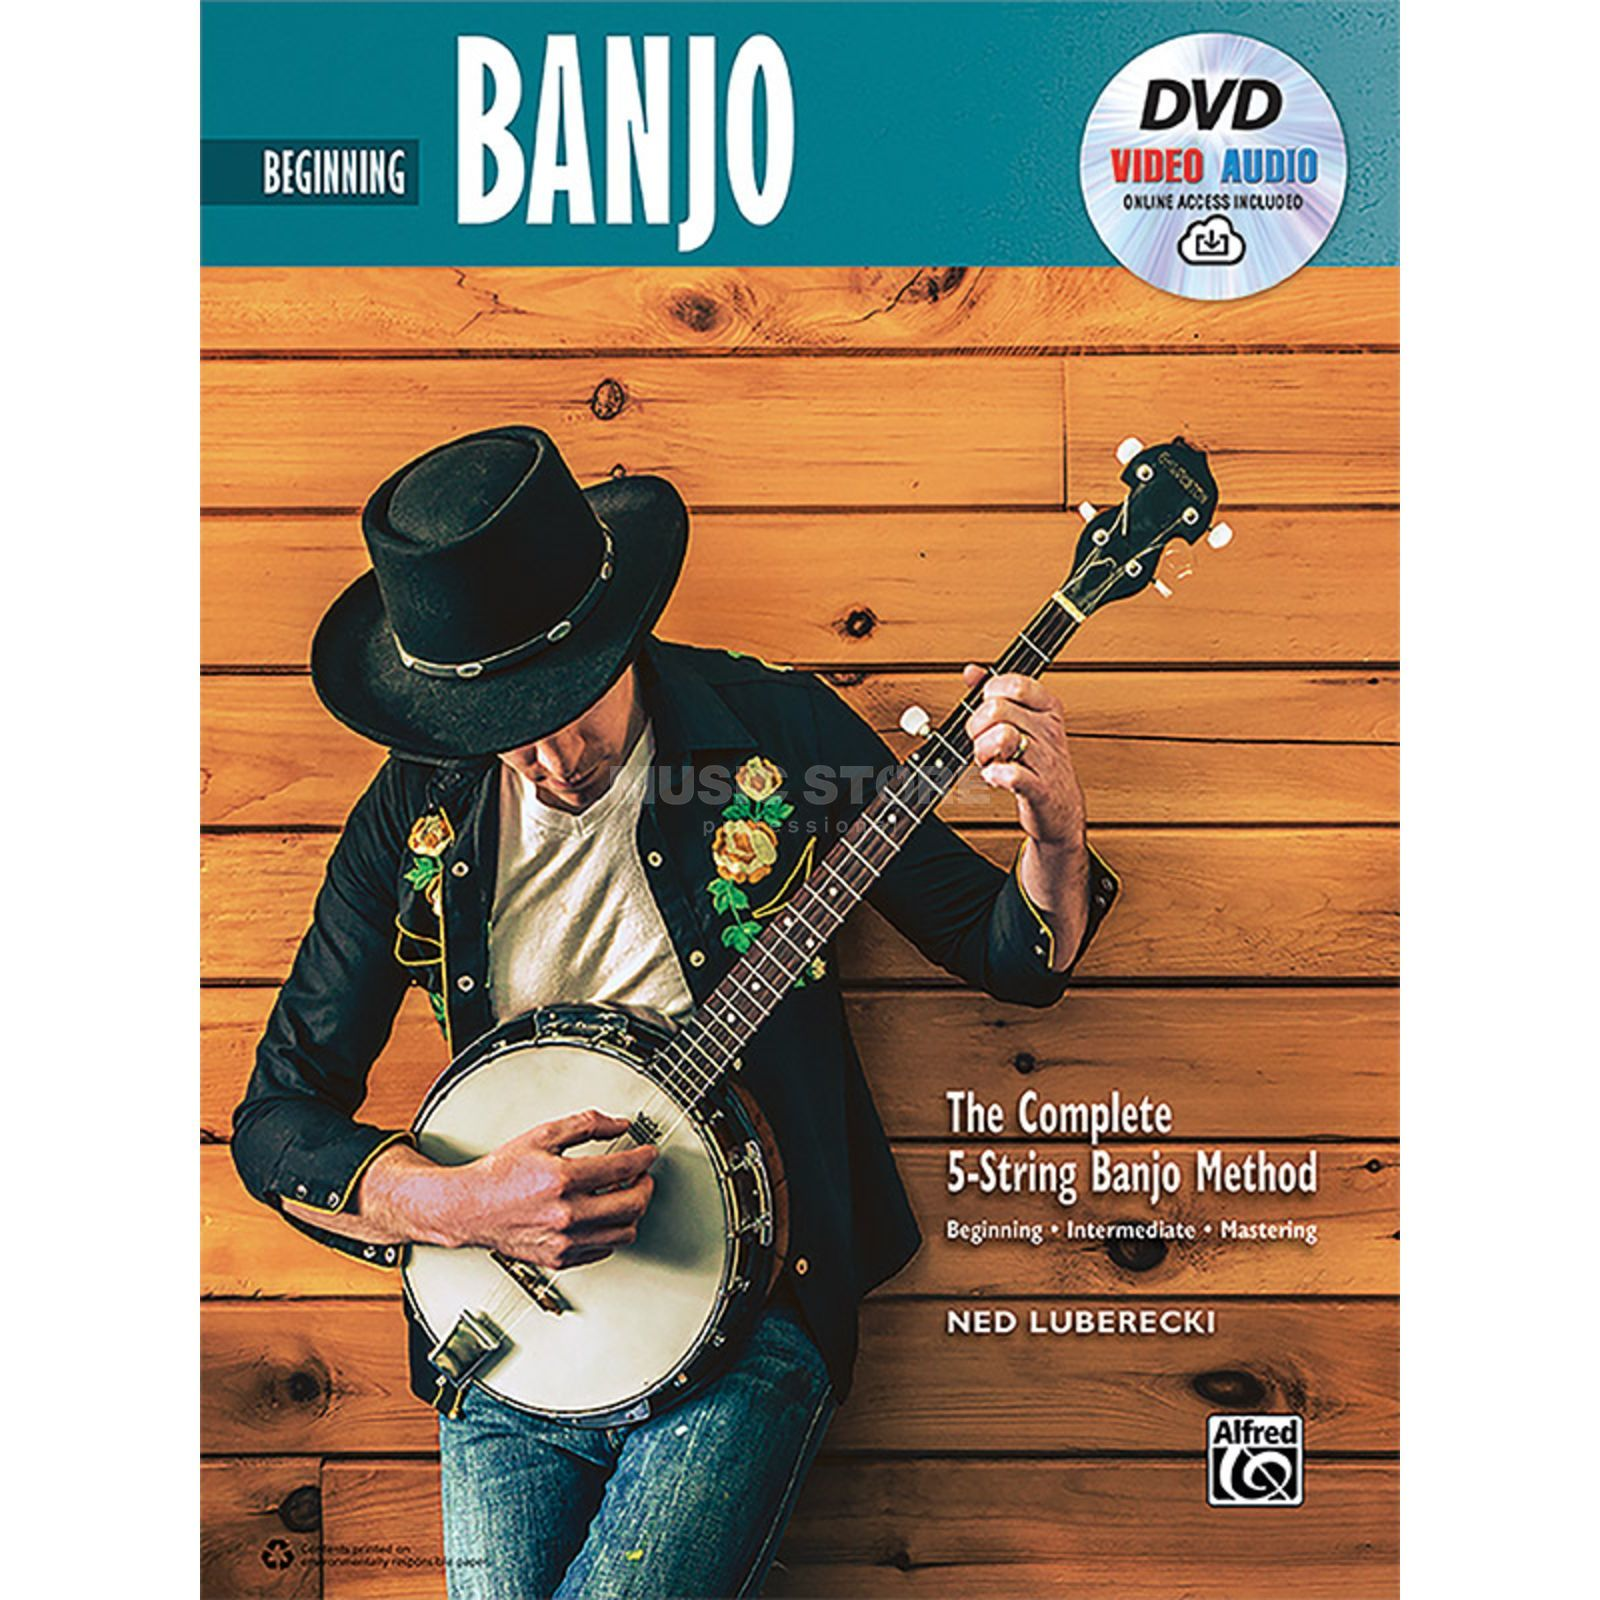 Alfred Music The Complete 5-String Banjo Method: Beginning Banjo Imagem do produto